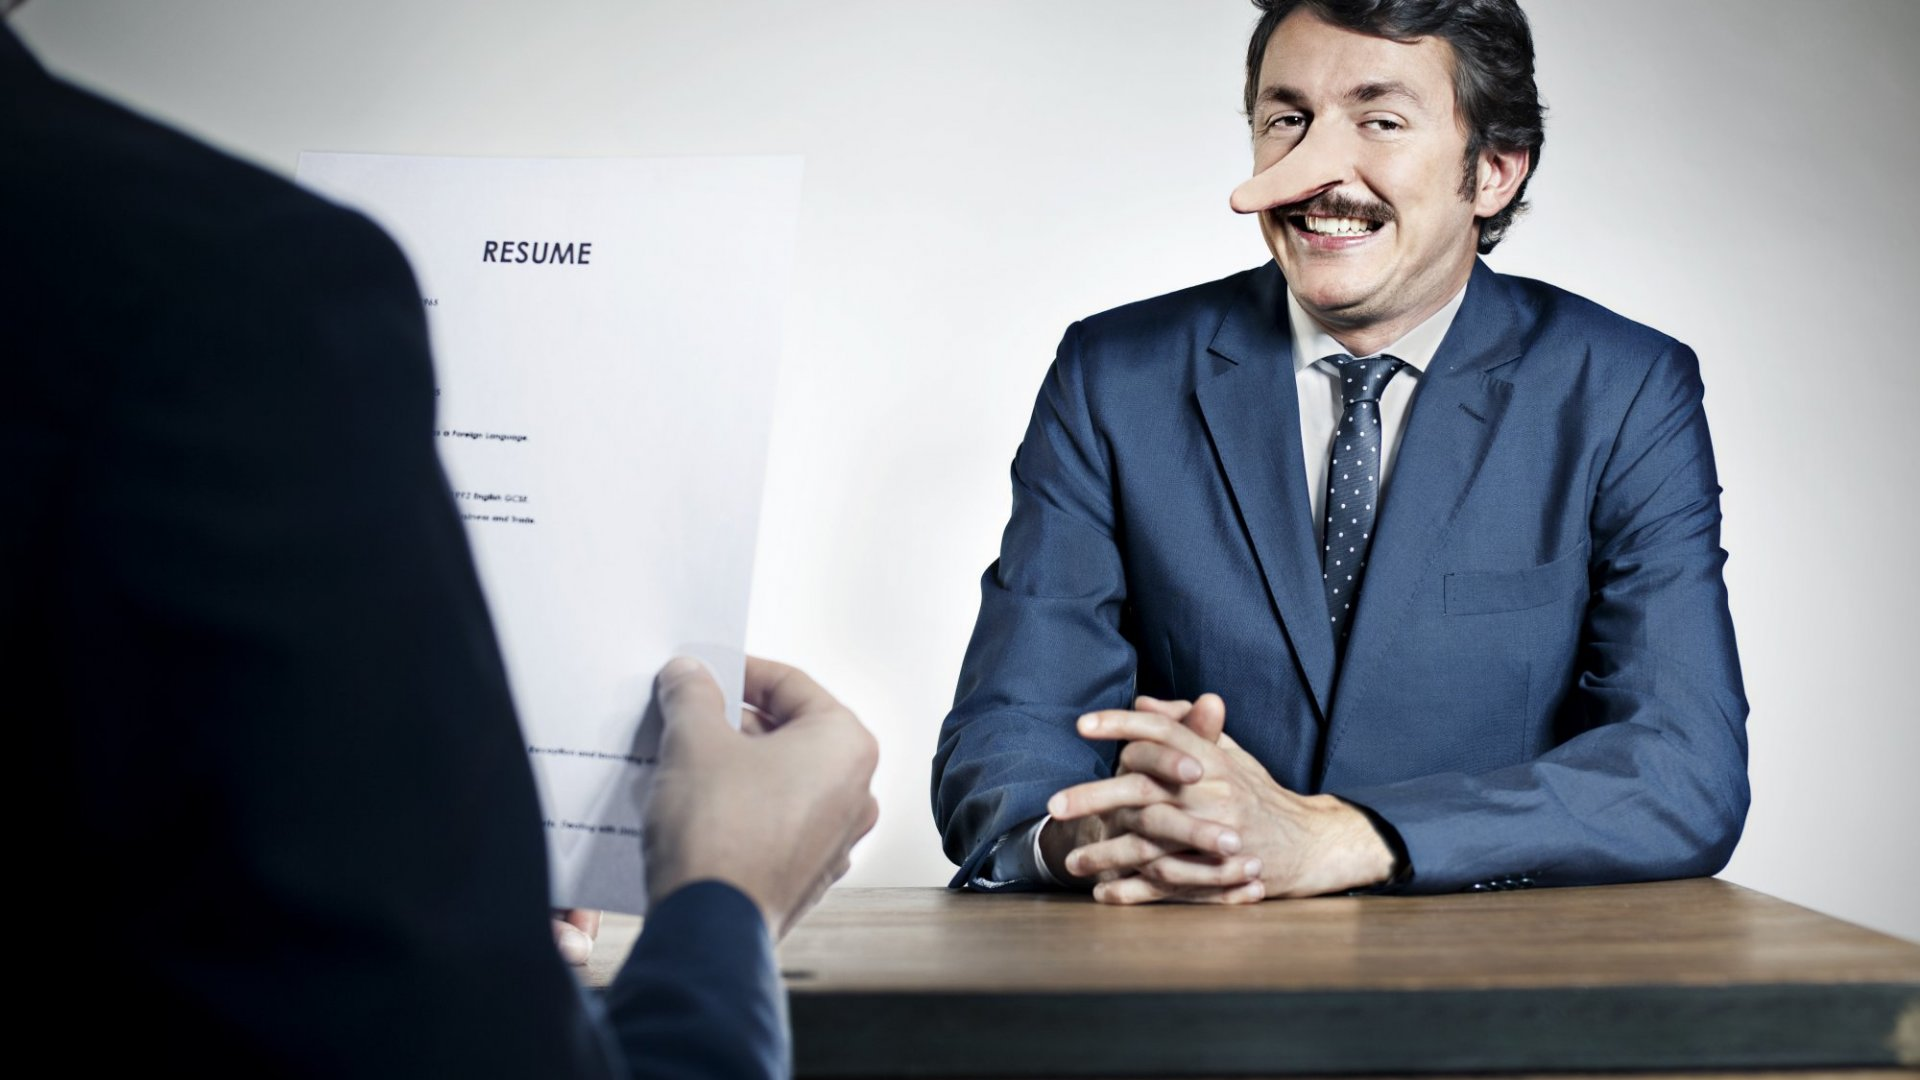 How Honest Should You Be in Job Interviews?